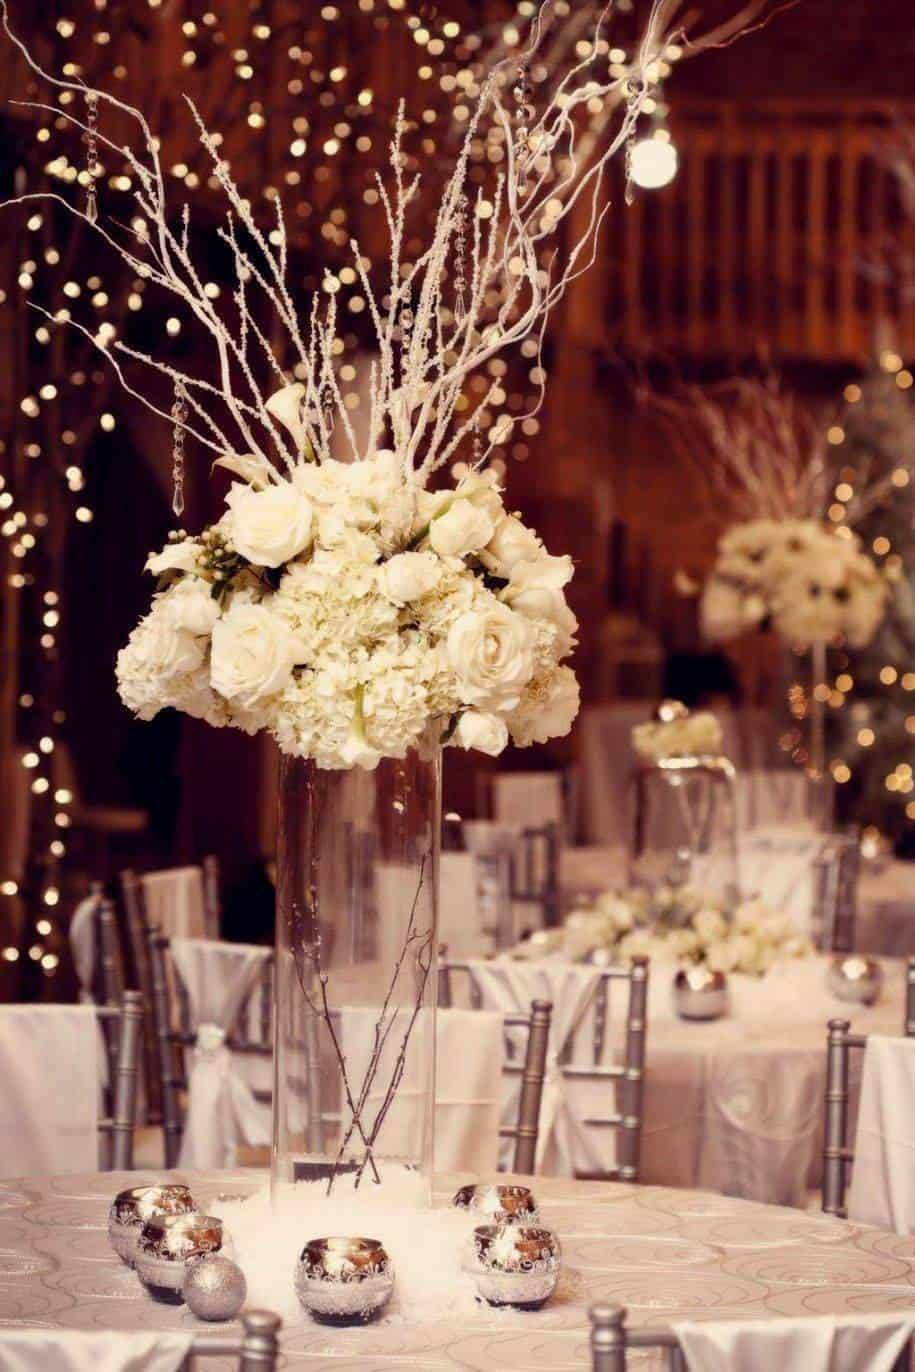 Festive Florals - The perfect flowers for a Christmas wedding